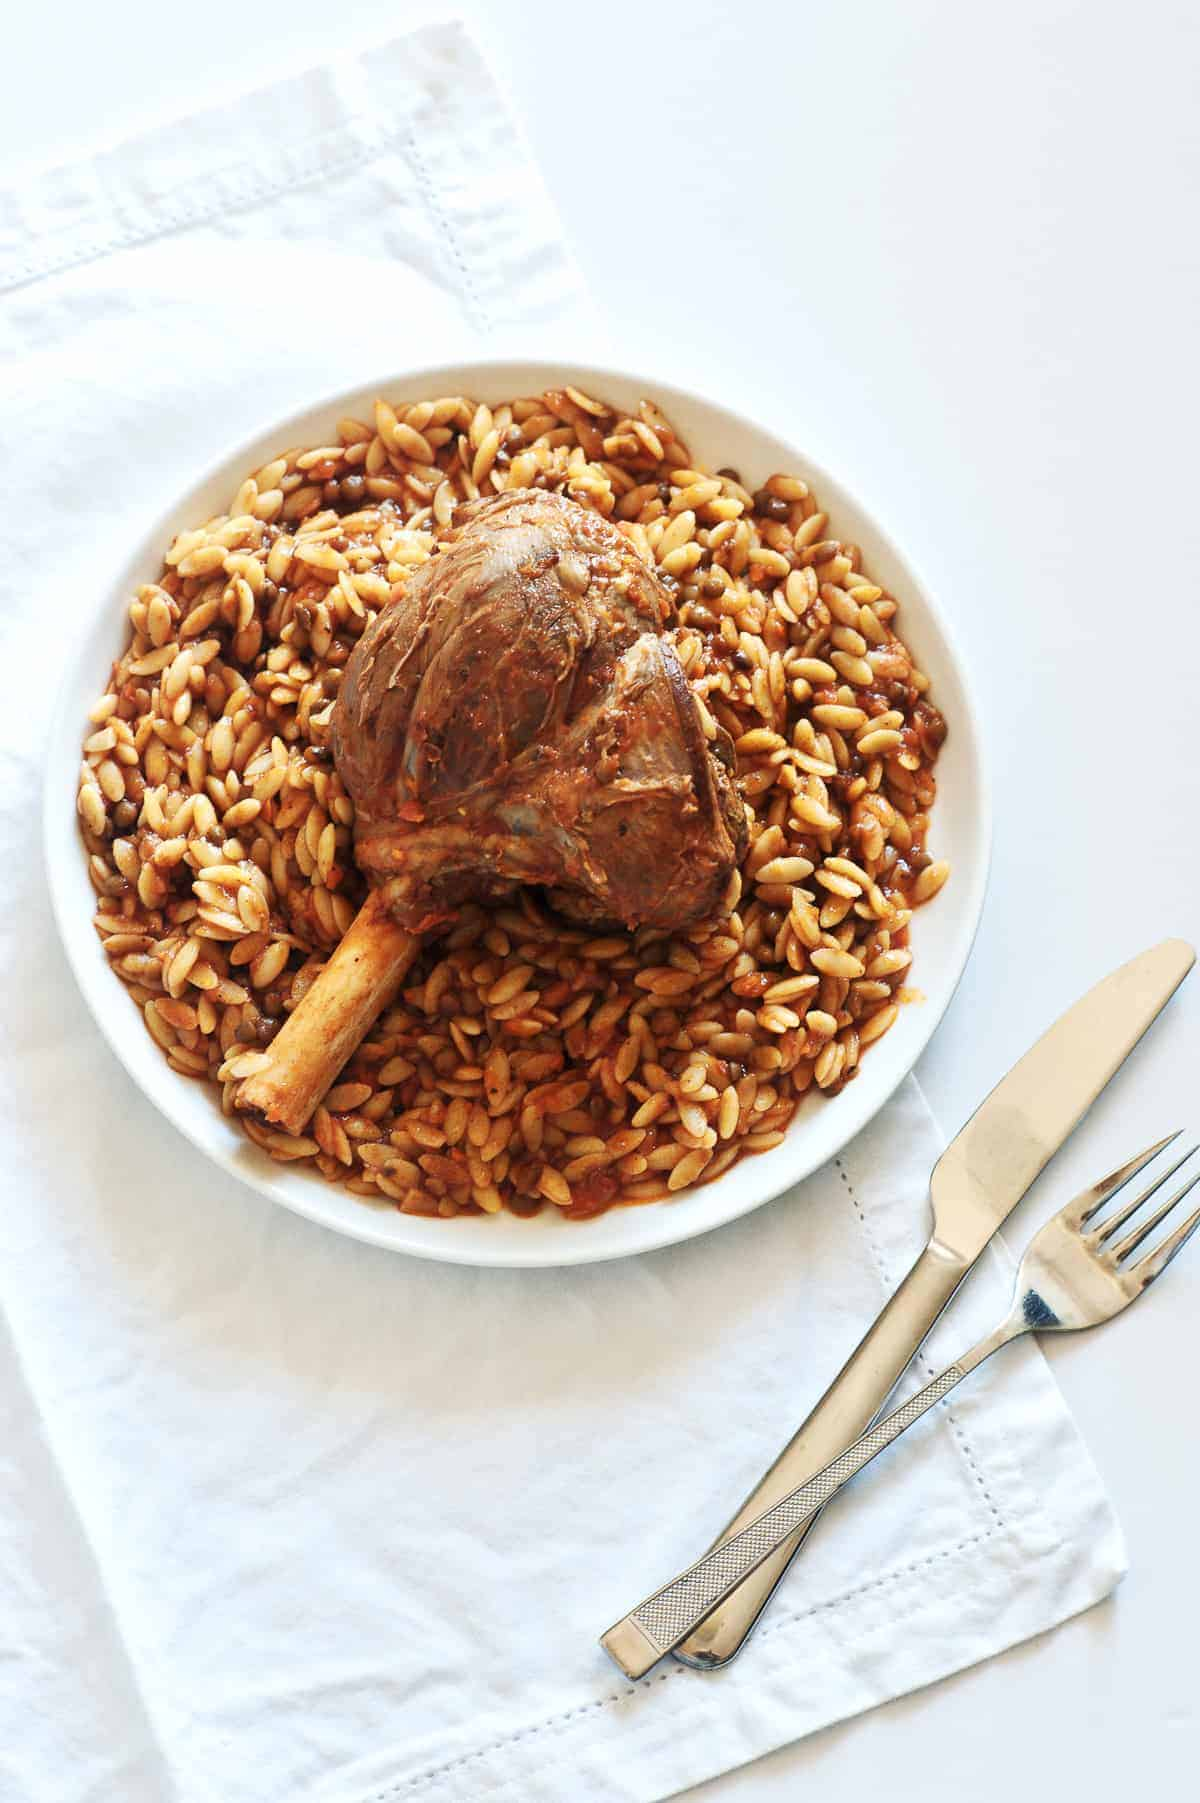 a birds eye view of a a braised lamb shank served with orzo pasta on a white plate